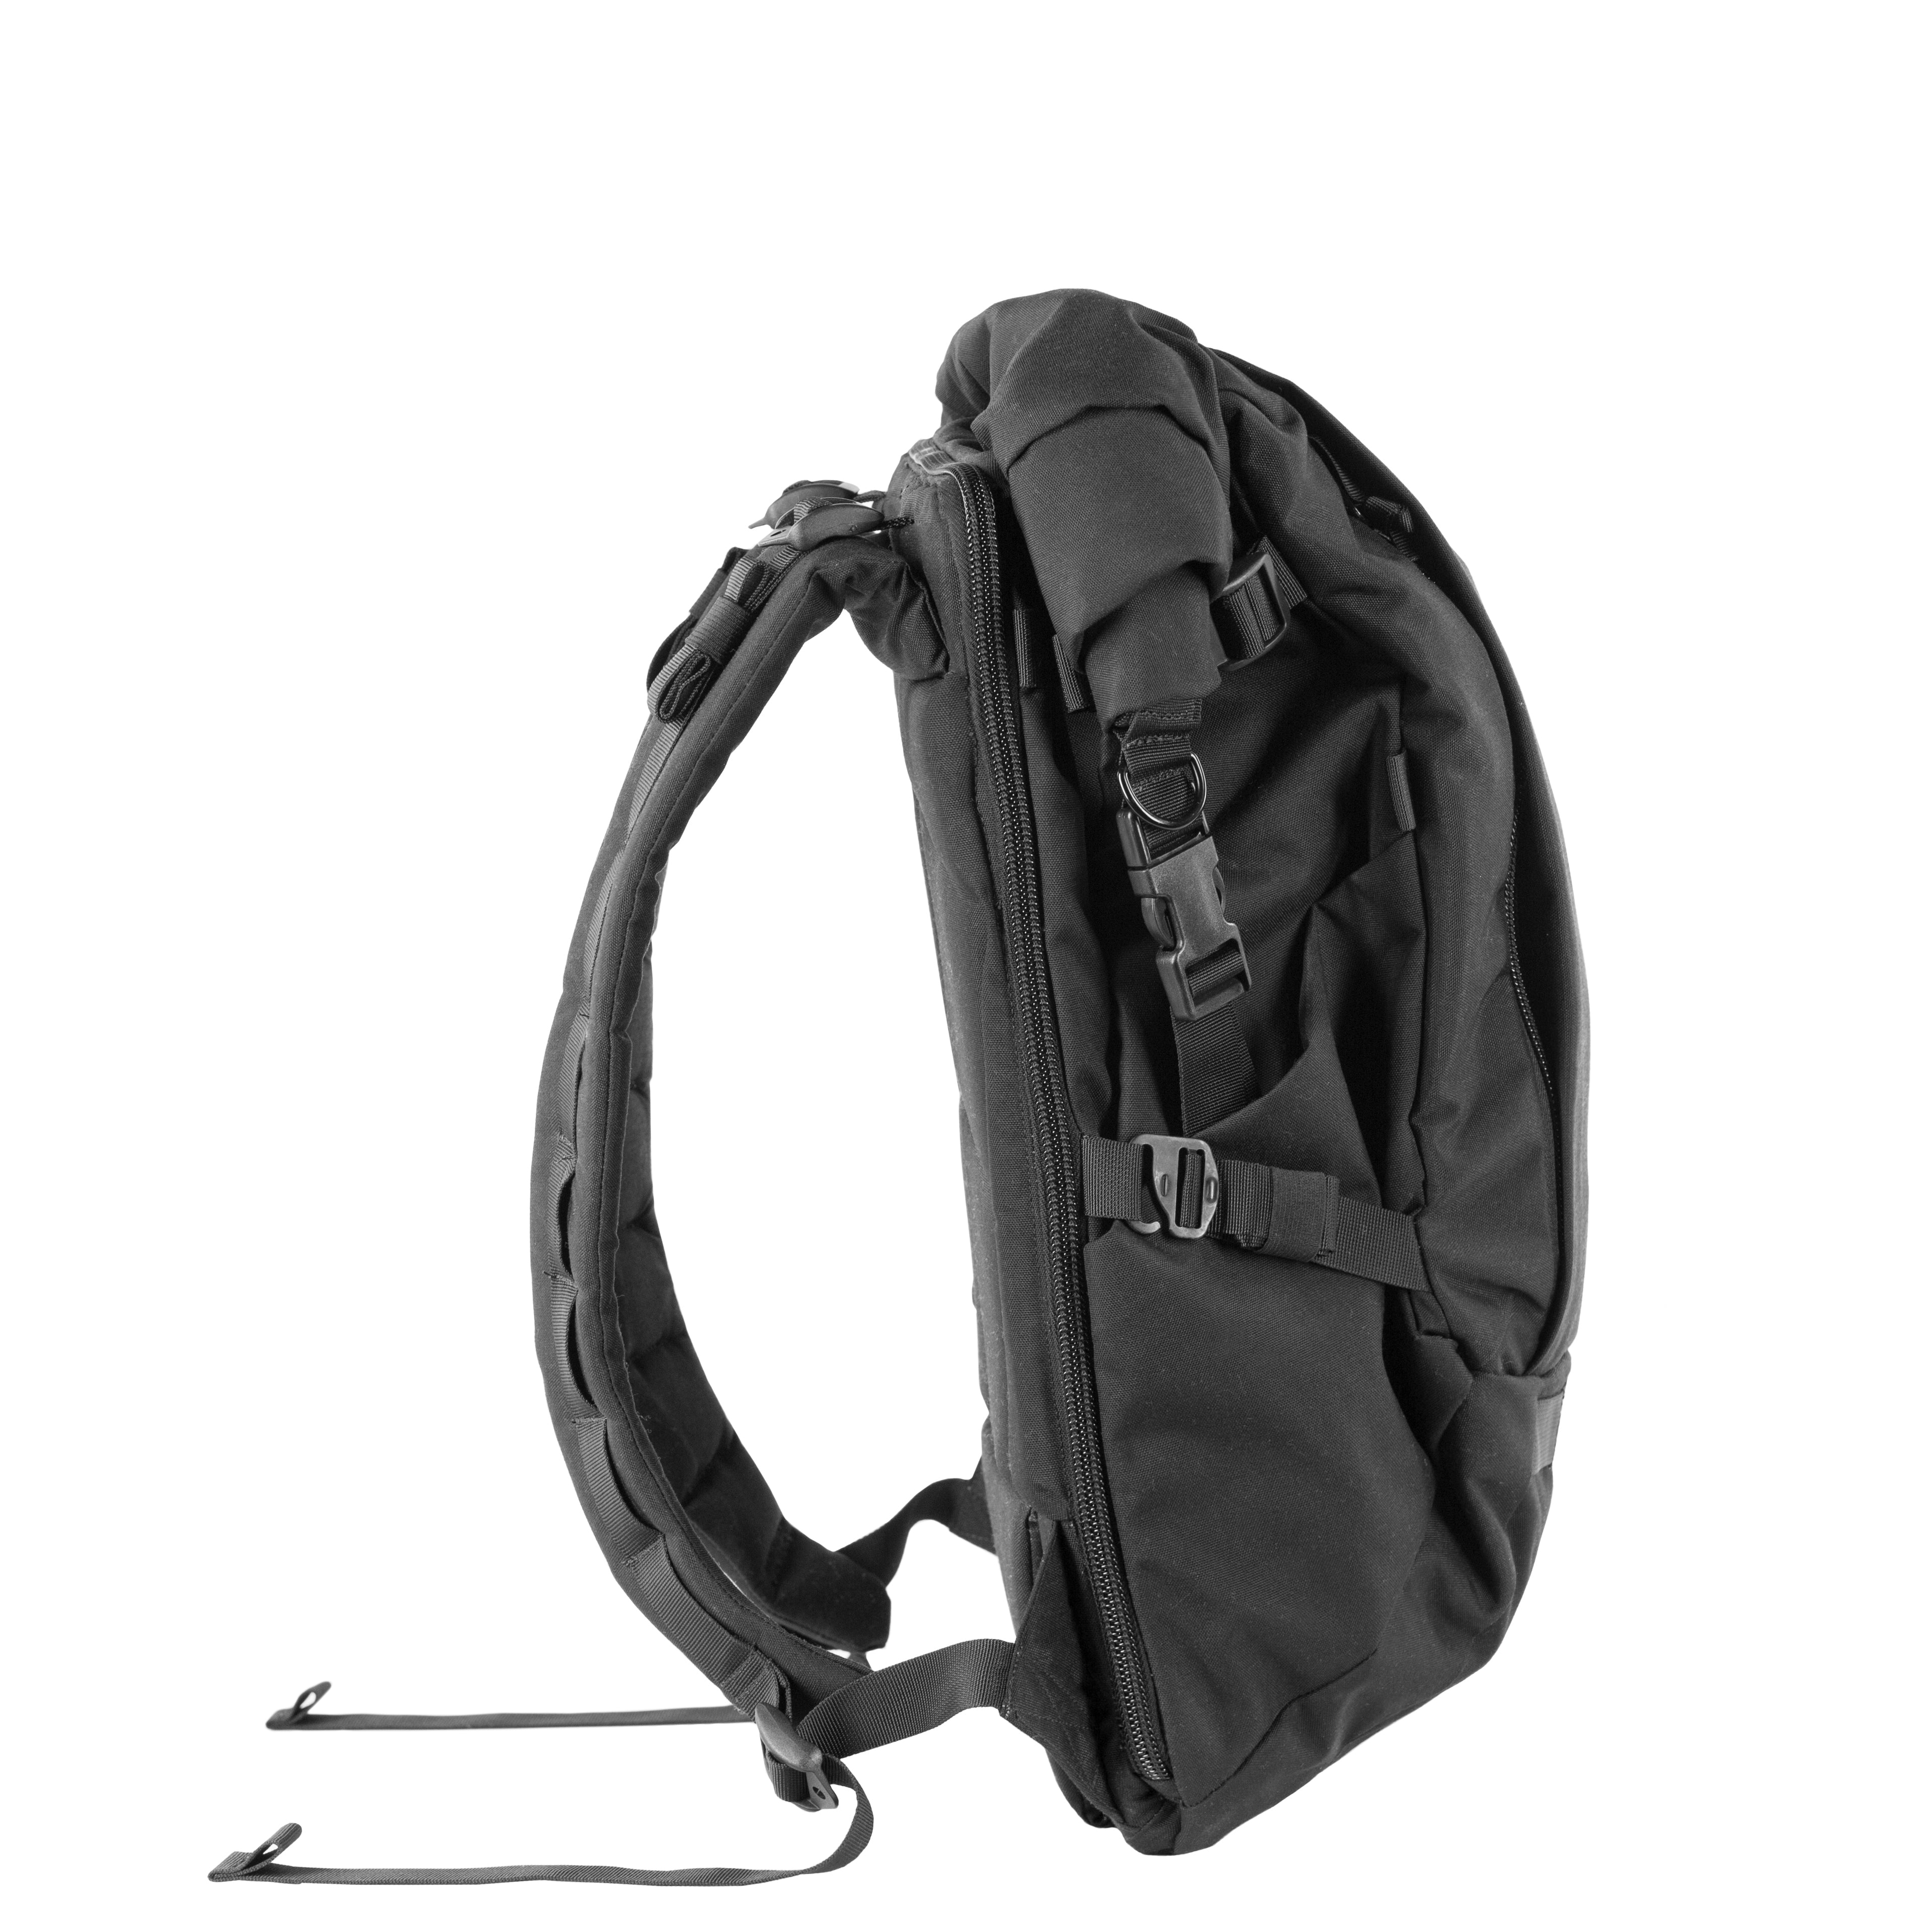 ATD1 Backpack - Black Cordura® Fabric - Attitudesupply